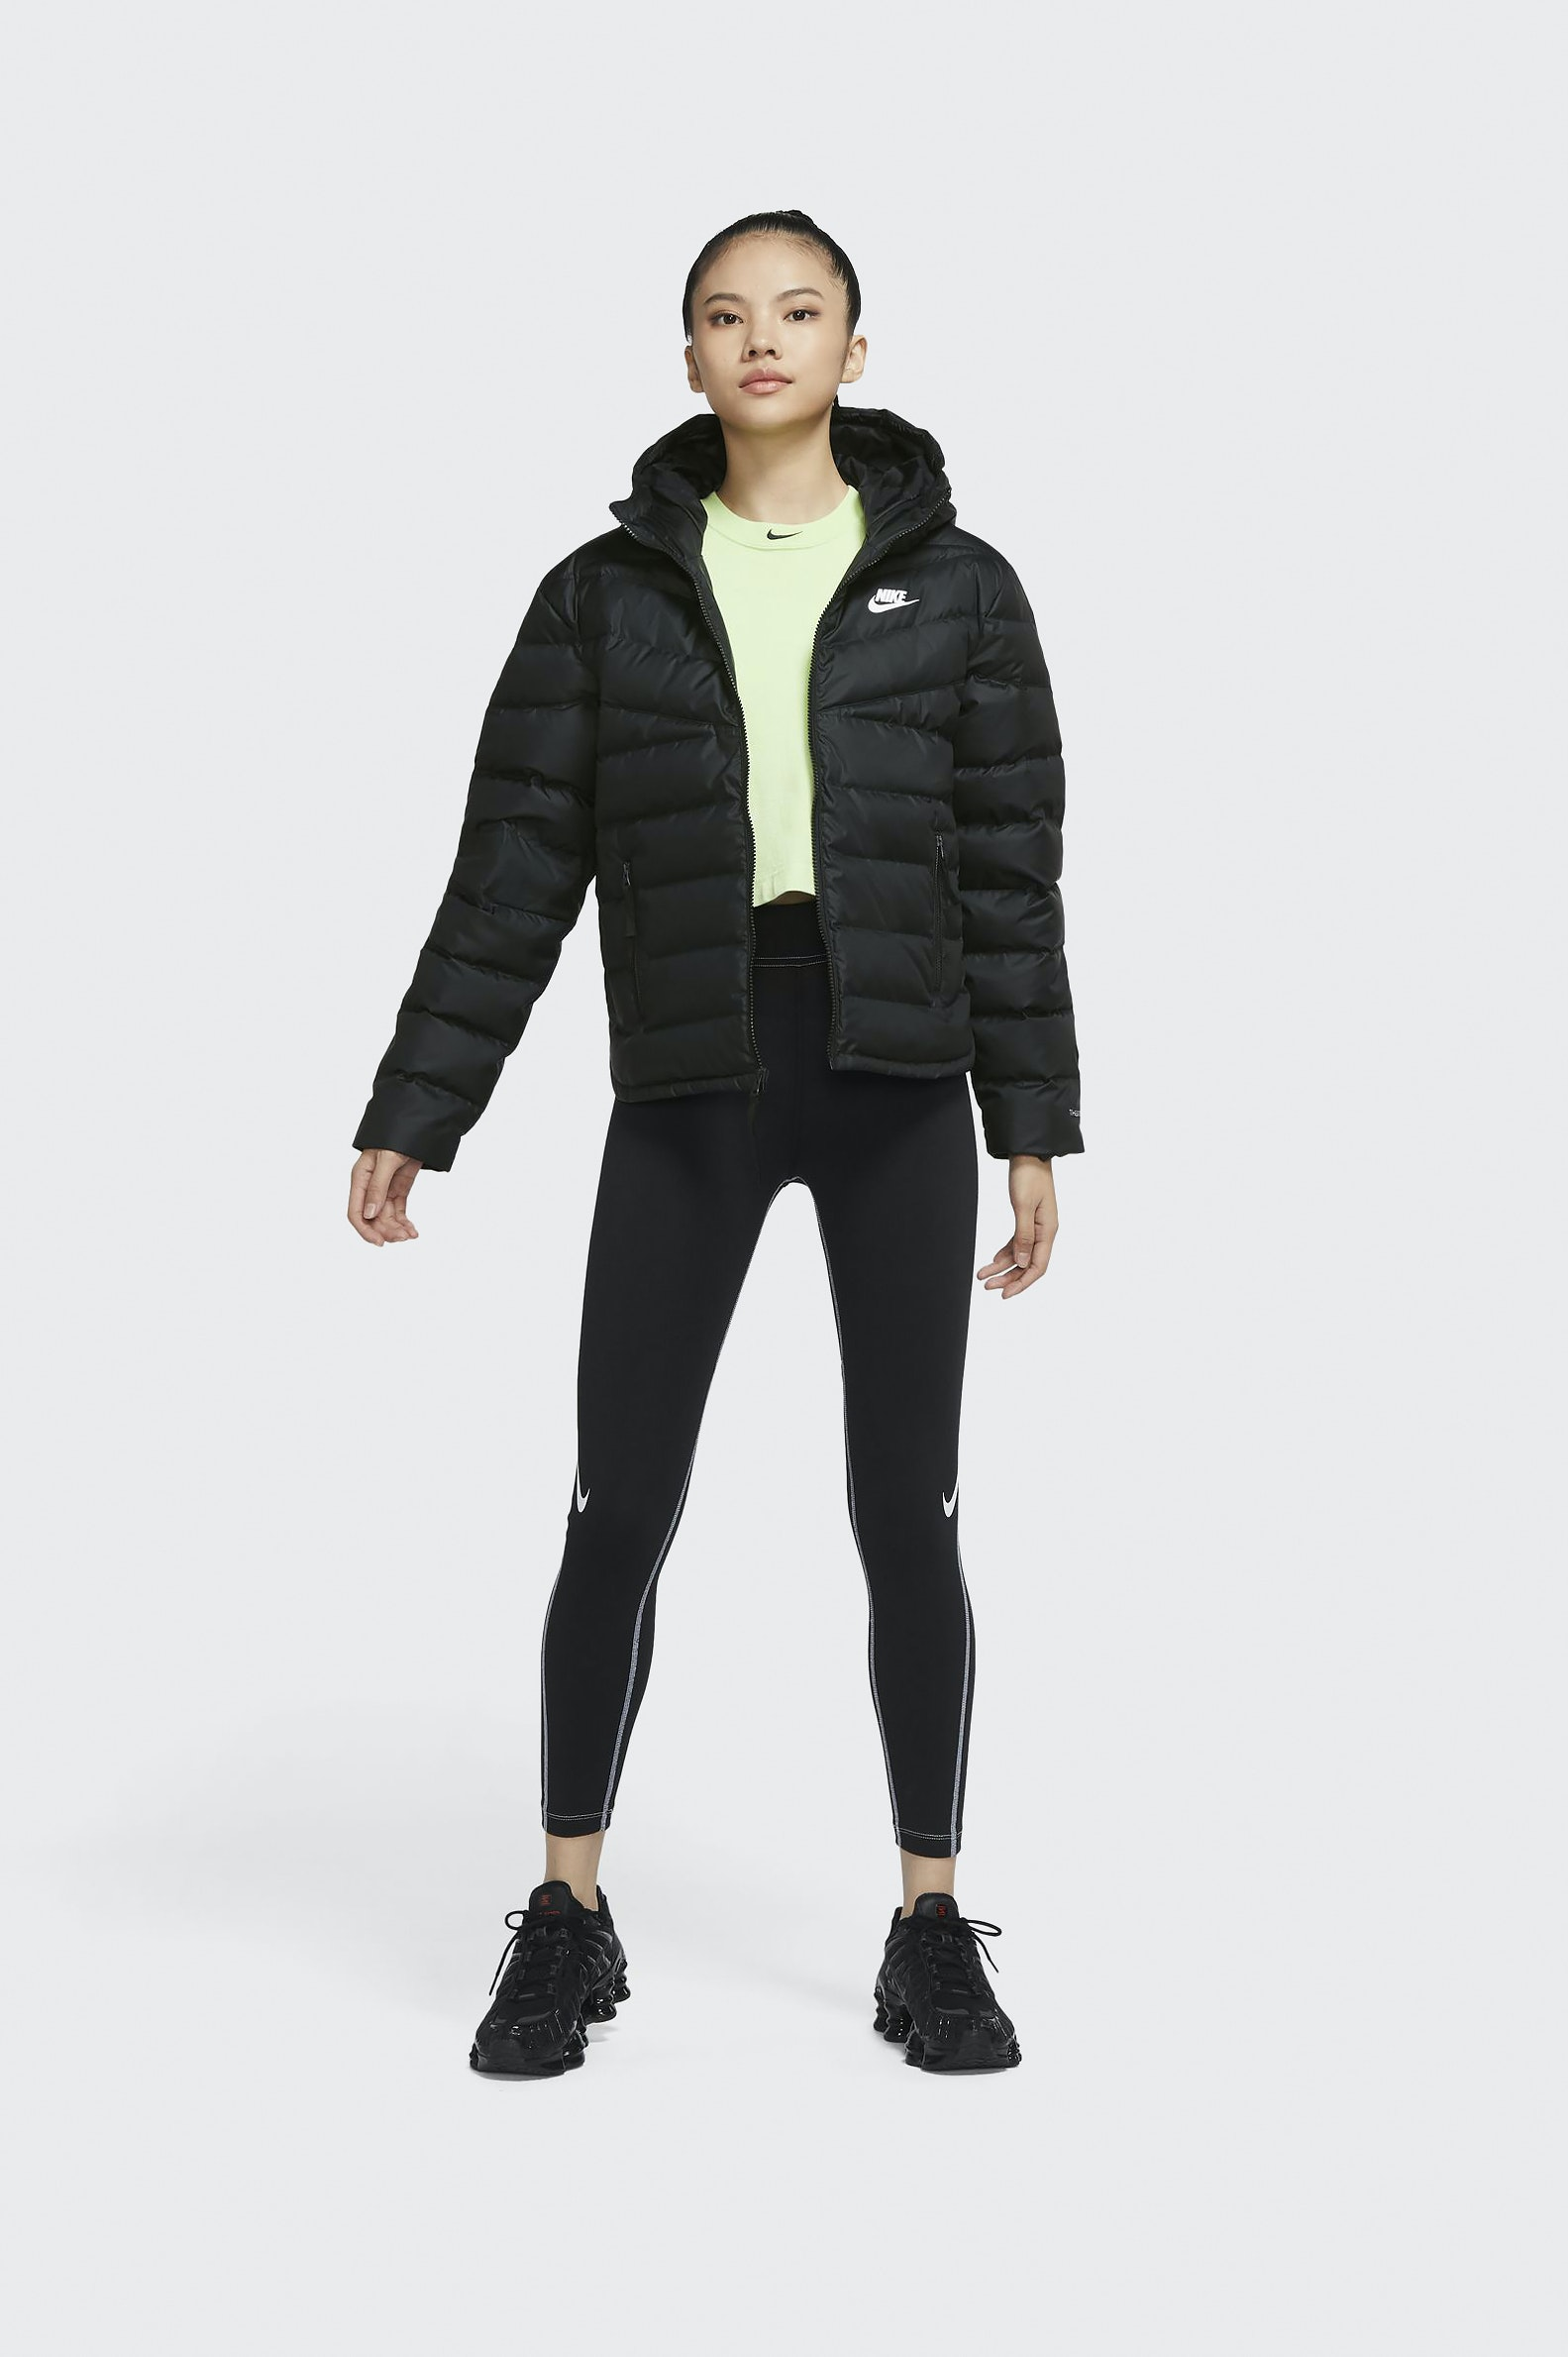 CAZADORA CASUAL NIKE THERMA-FIT MUJER